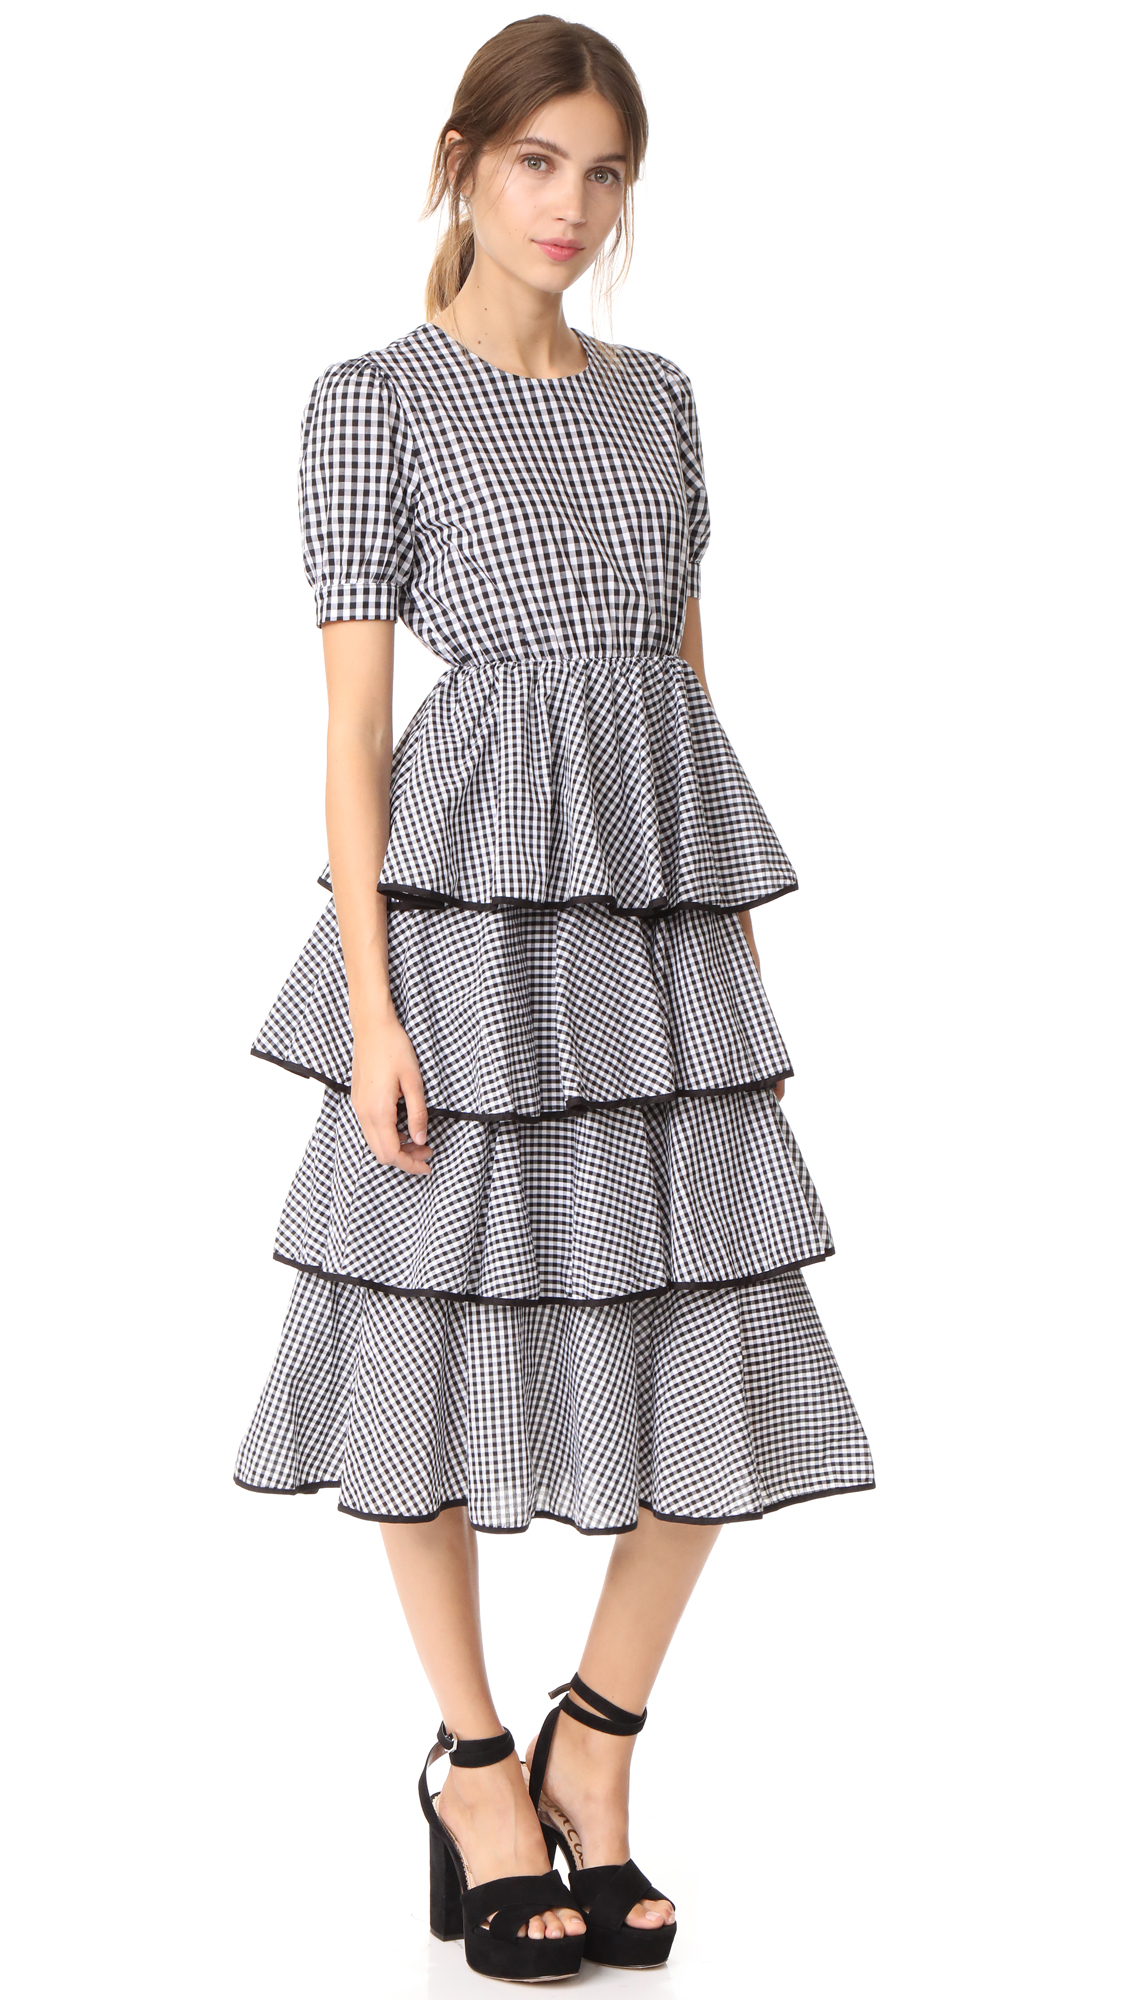 STYLEKEEPERS Beauty Buzz Dress - Checked Black